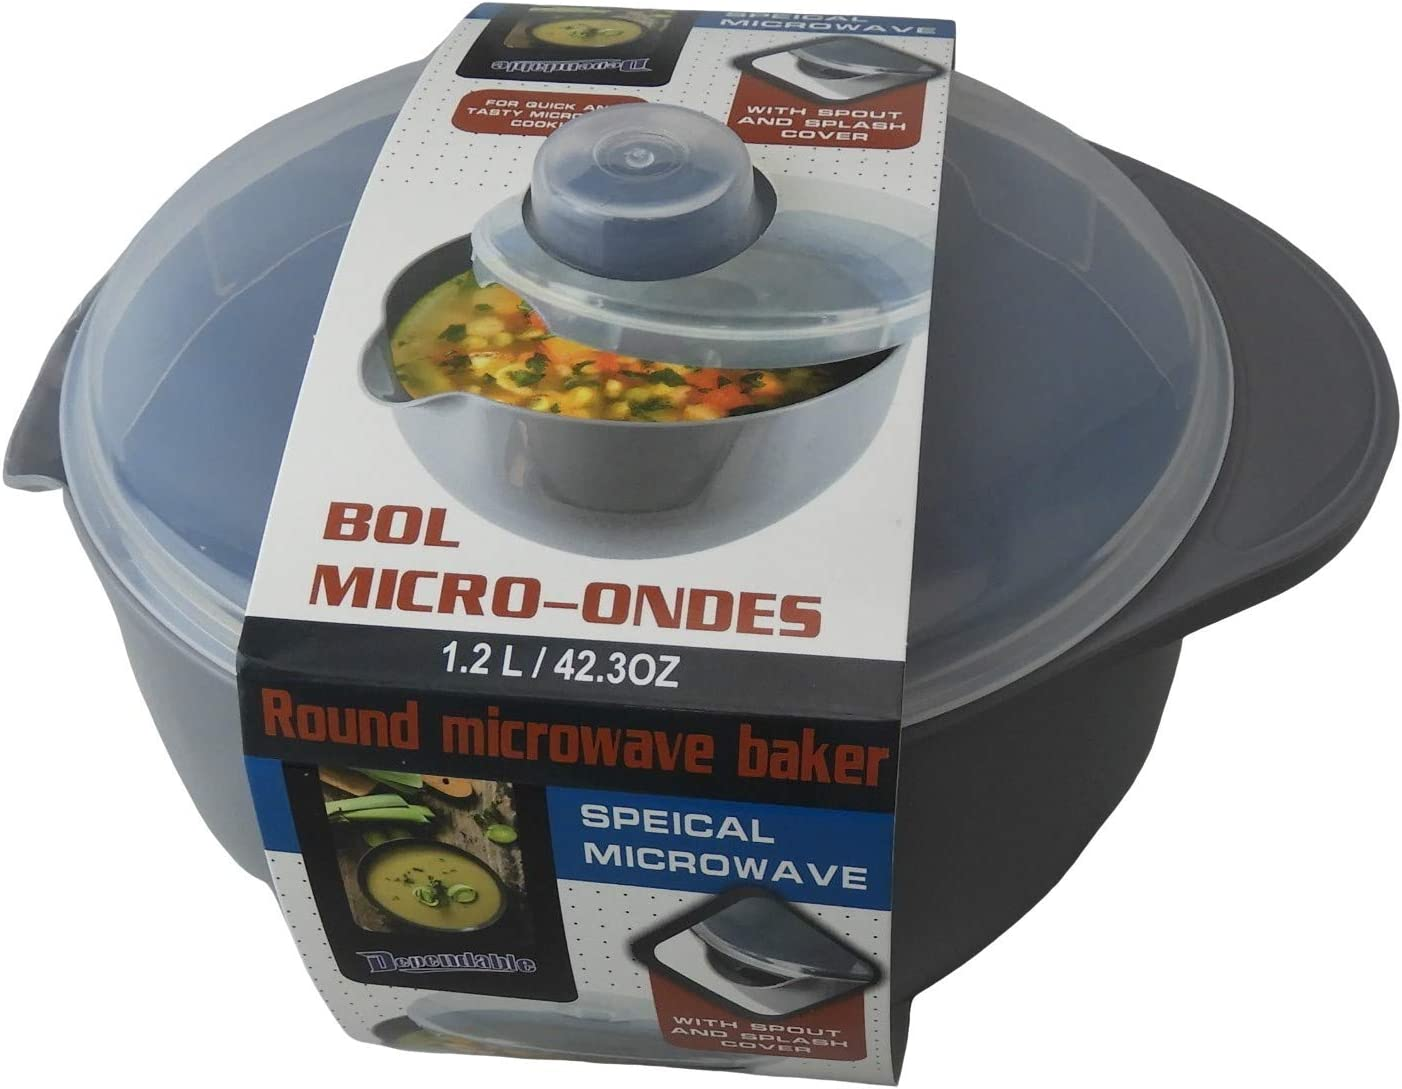 Microwave Soup and Stew Maker Microwave Bowl with Spout and Splash Cover 1.2L